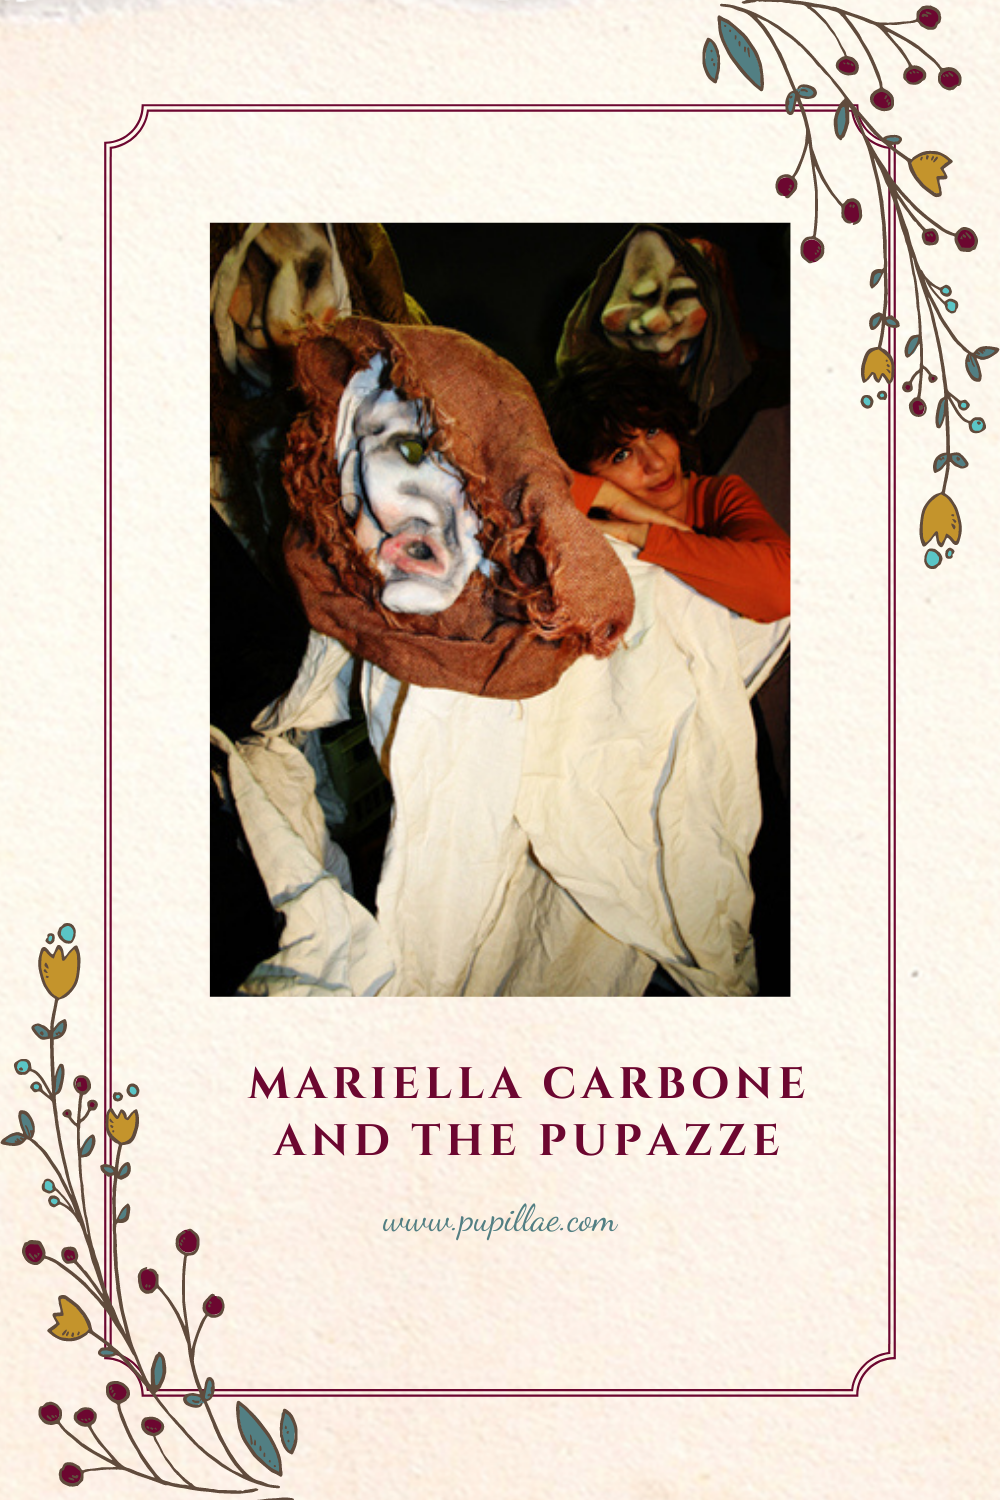 Mariella Carbone and the Pupazze